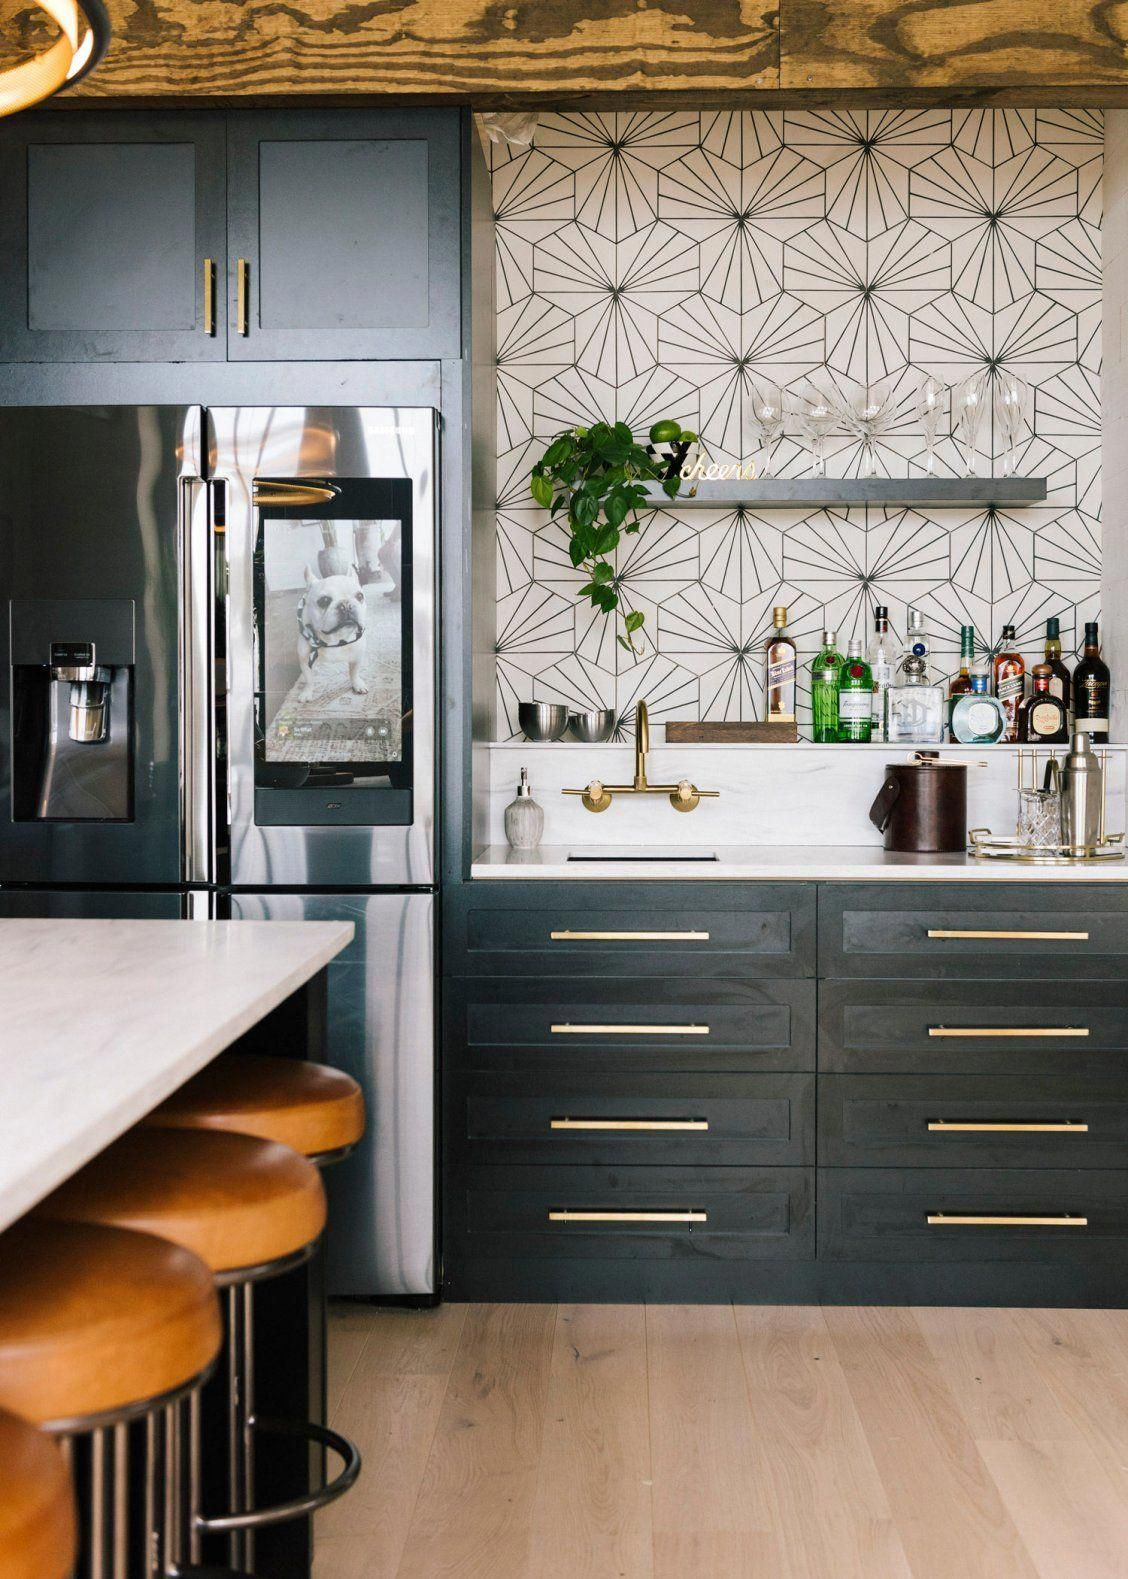 Cost To Remodel House His Home Improvement Residential Remodeling Companies 20190426